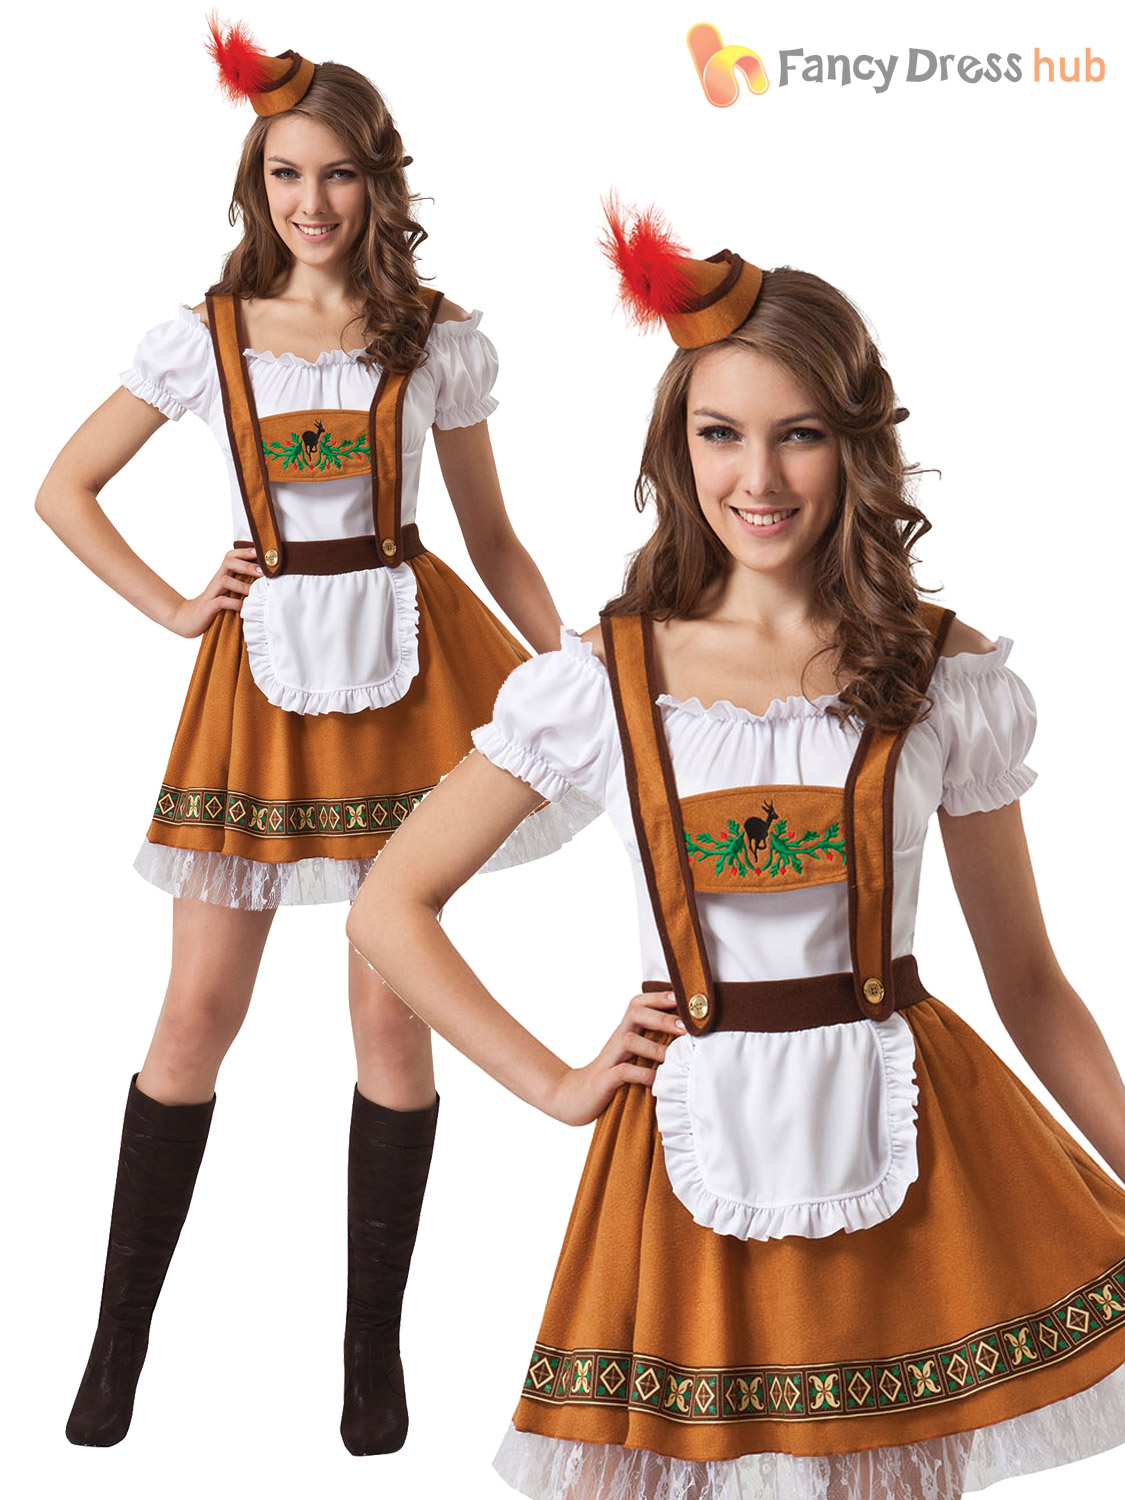 Mens-Ladies-Oktoberfest-Bavarian-Fancy-Dress-Costume-Couples-  sc 1 st  eBay & Mens Ladies Oktoberfest Bavarian Fancy Dress Costume Couples German ...